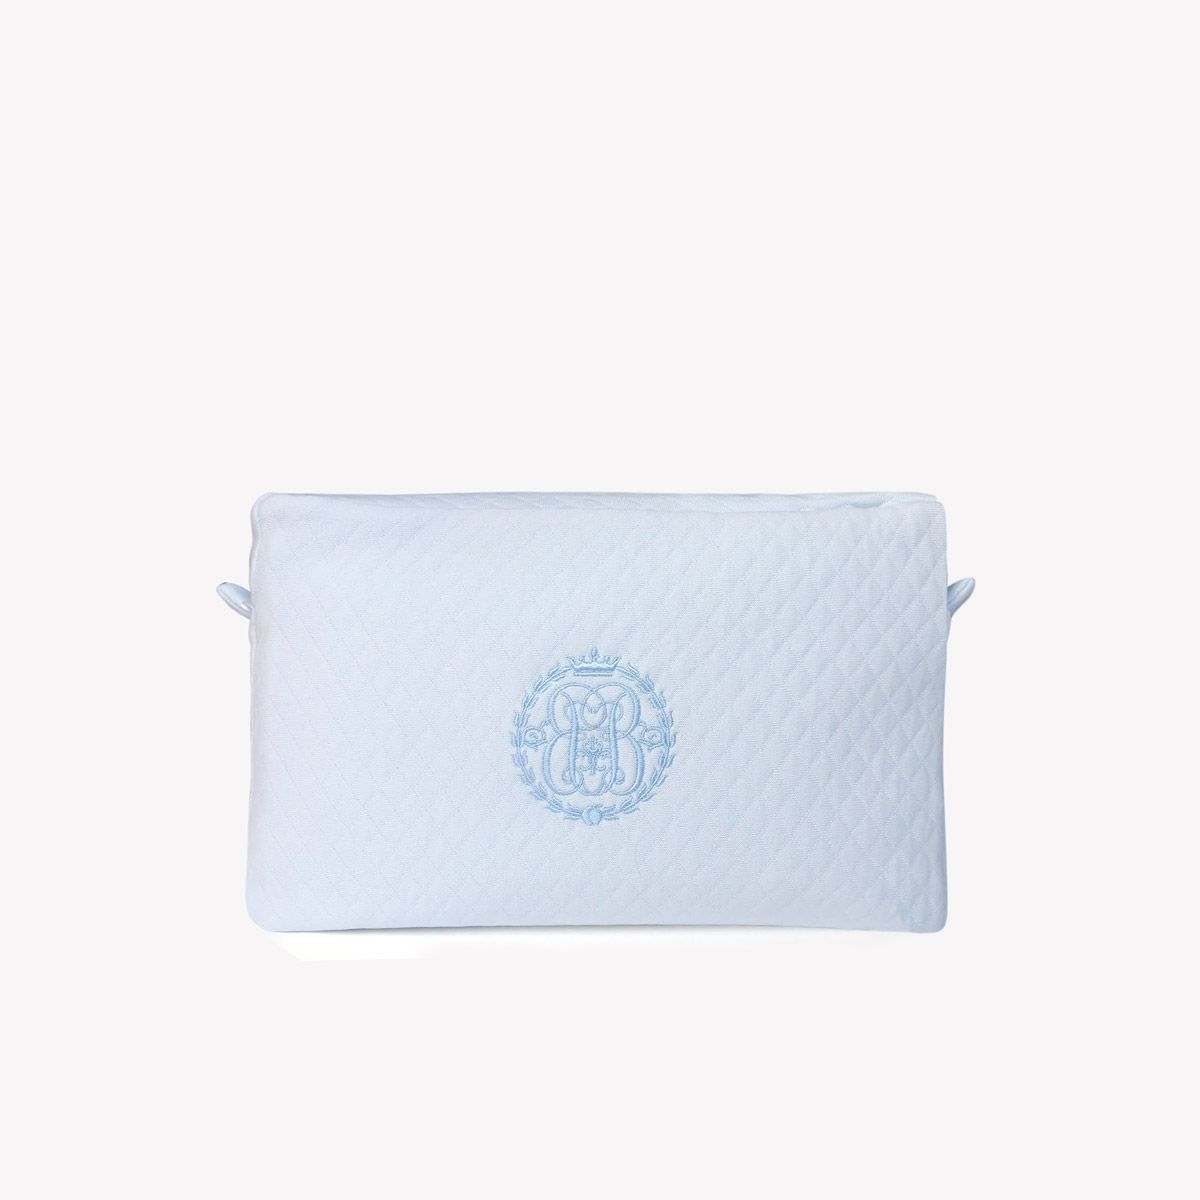 POMME CARAMEL BABY - BIRTH CIEL Toilet Bag PC-CMB-GT